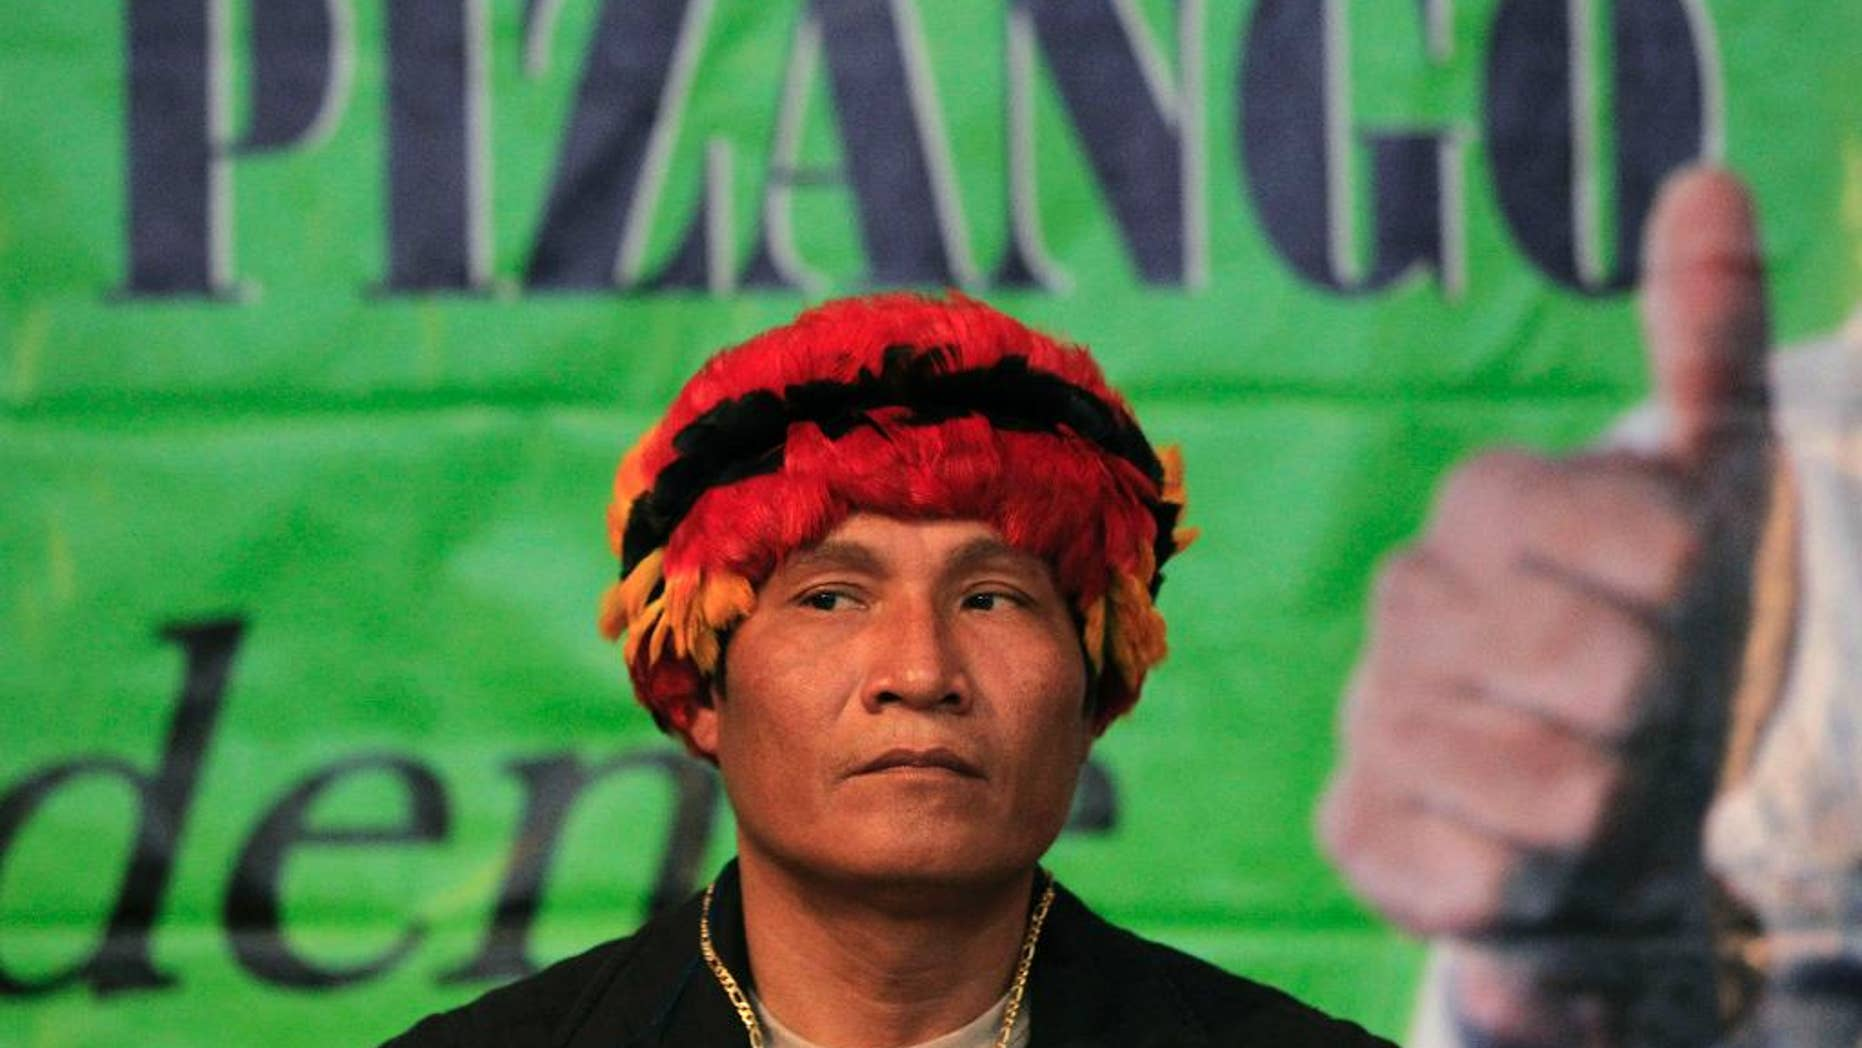 FILE - In this Nov. 18, 2010, file photo, Peru's Amazon leader Alberto Pizango looks on during an act after announcing his candidacy for Peru's 2011 presidential elections in Lima, Peru. Pizango and 52 others went on trial Wednesday in the killing of a dozen police officers after security forces fired on protesters opposed to plans to open the Amazon to widespread logging and oil drilling. (AP Photo/Martin Mejia, File)